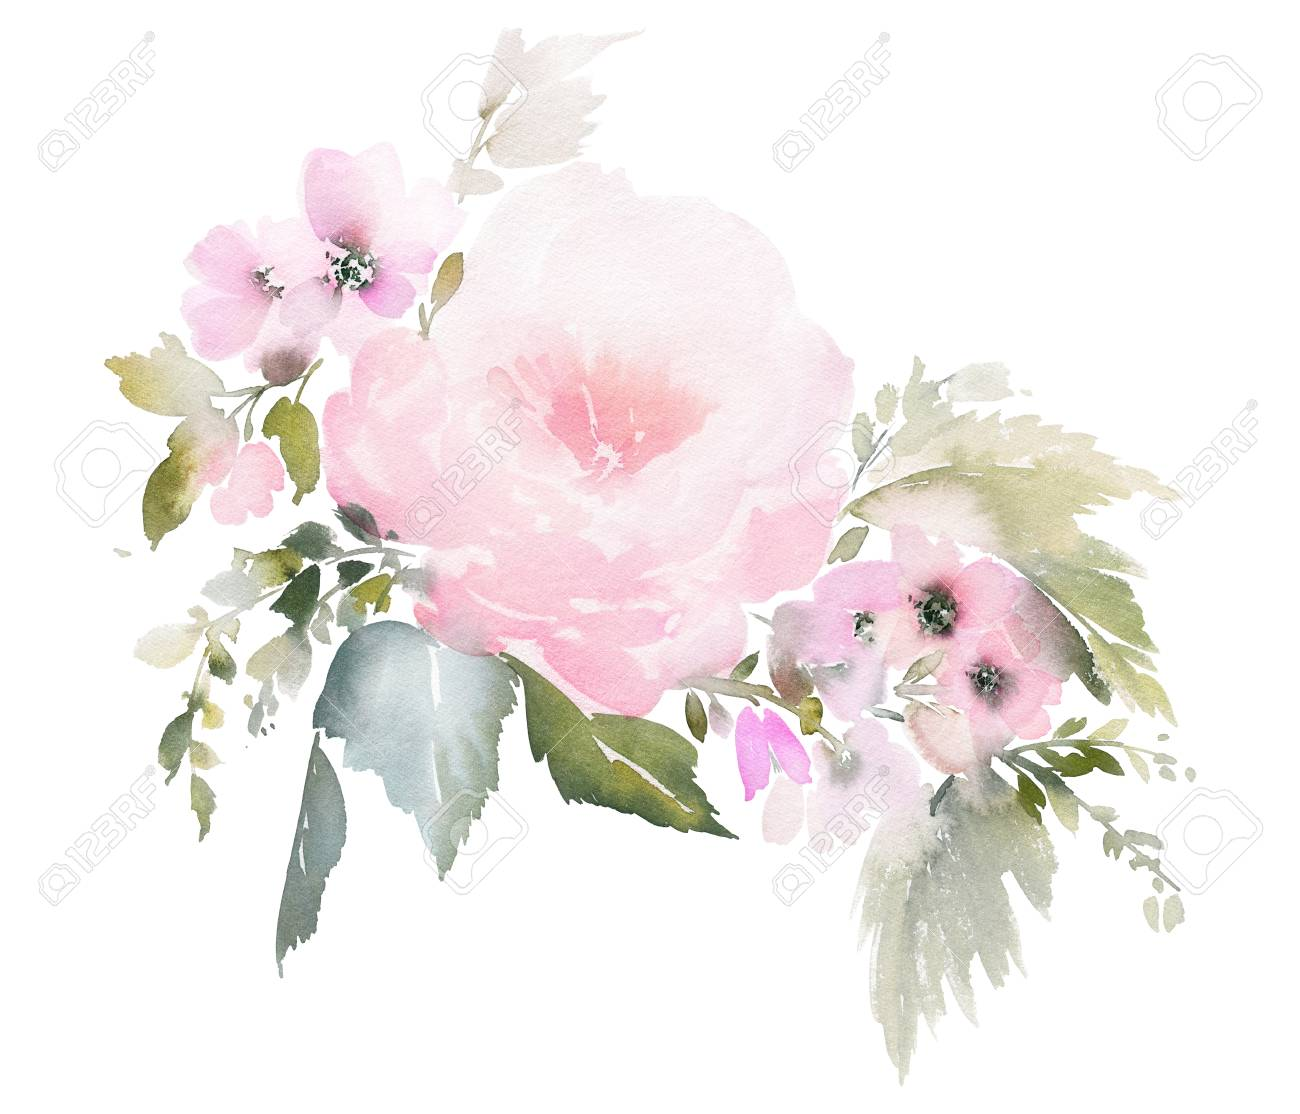 Watercolor floral illustration on white background for wedding invitations, cards. - 120463840